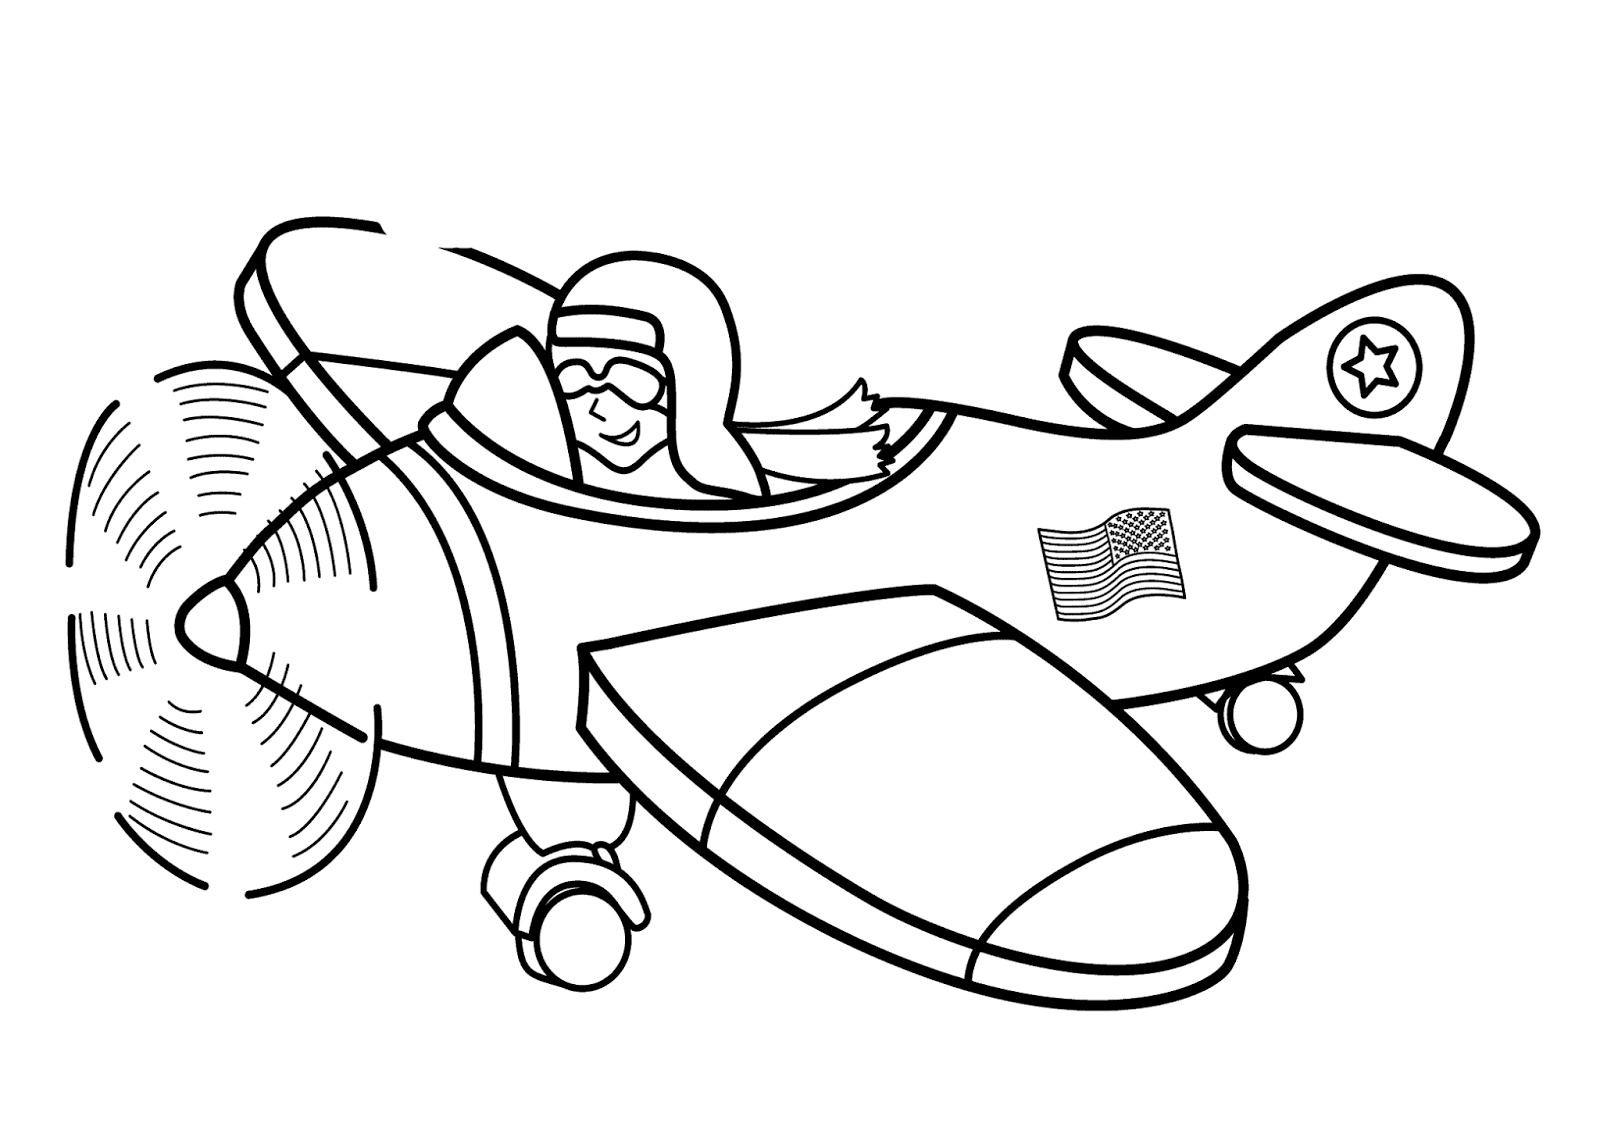 pilot coloring pages - photo#12